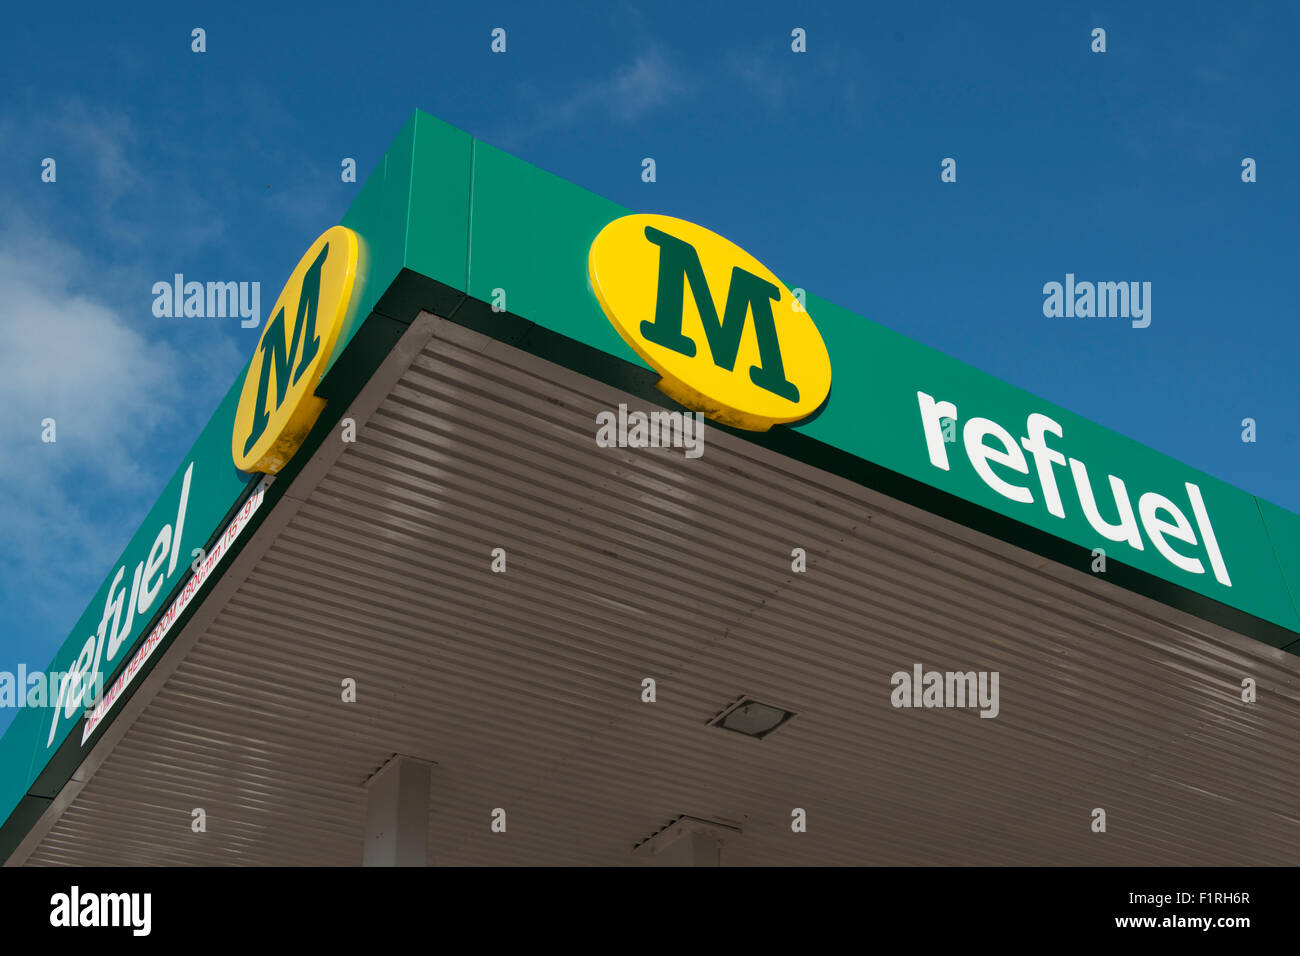 The logo of Morrisons Refuel on a petrol filling station against a blue sky (Editorial use only). - Stock Image